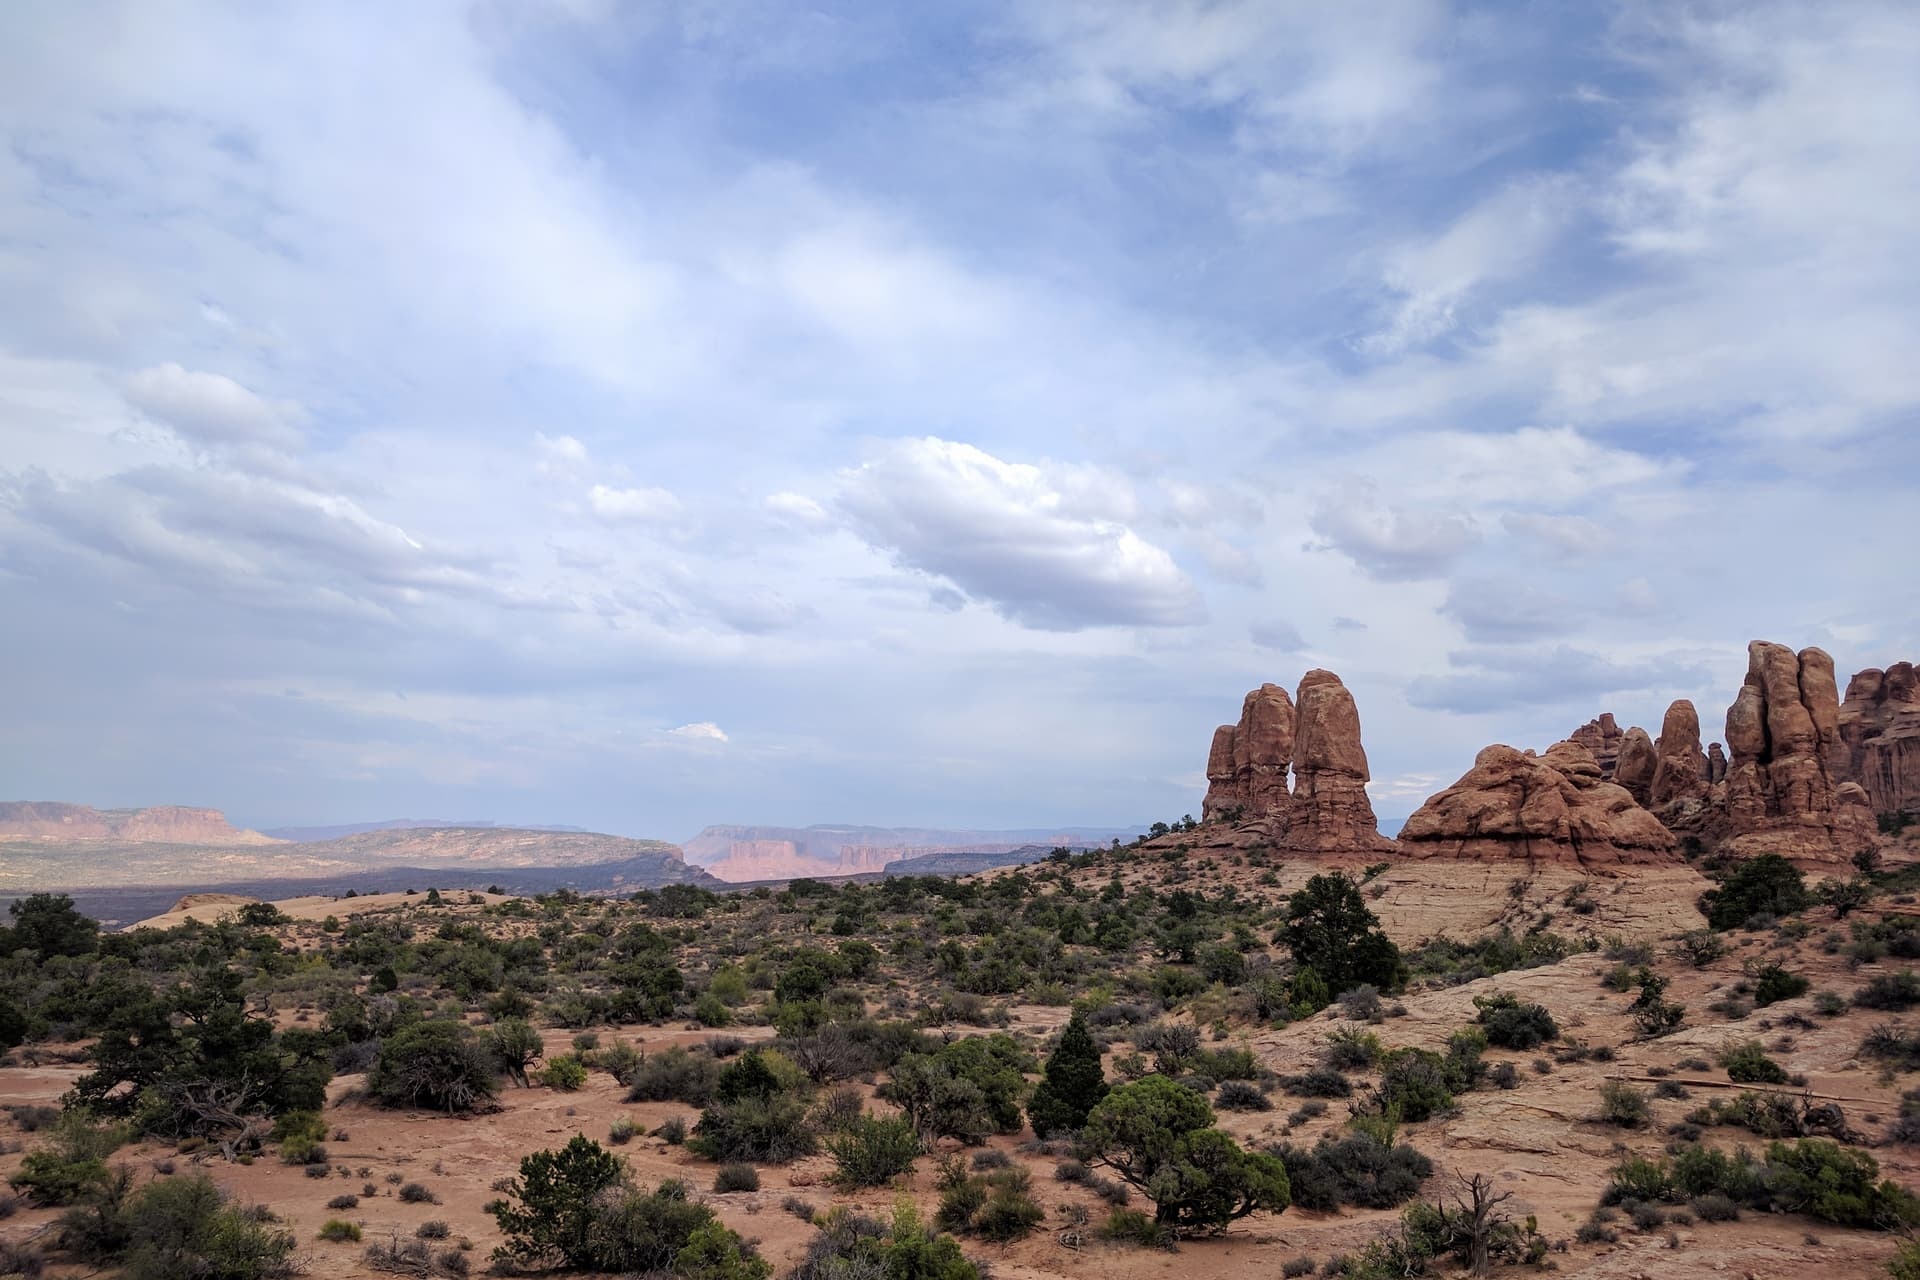 Looking southeast across Arches National Park. Pillars of red sandstone can be seen to the right. In the distance, the walls of a desert canyon almost seem to glow in the Sun's light.